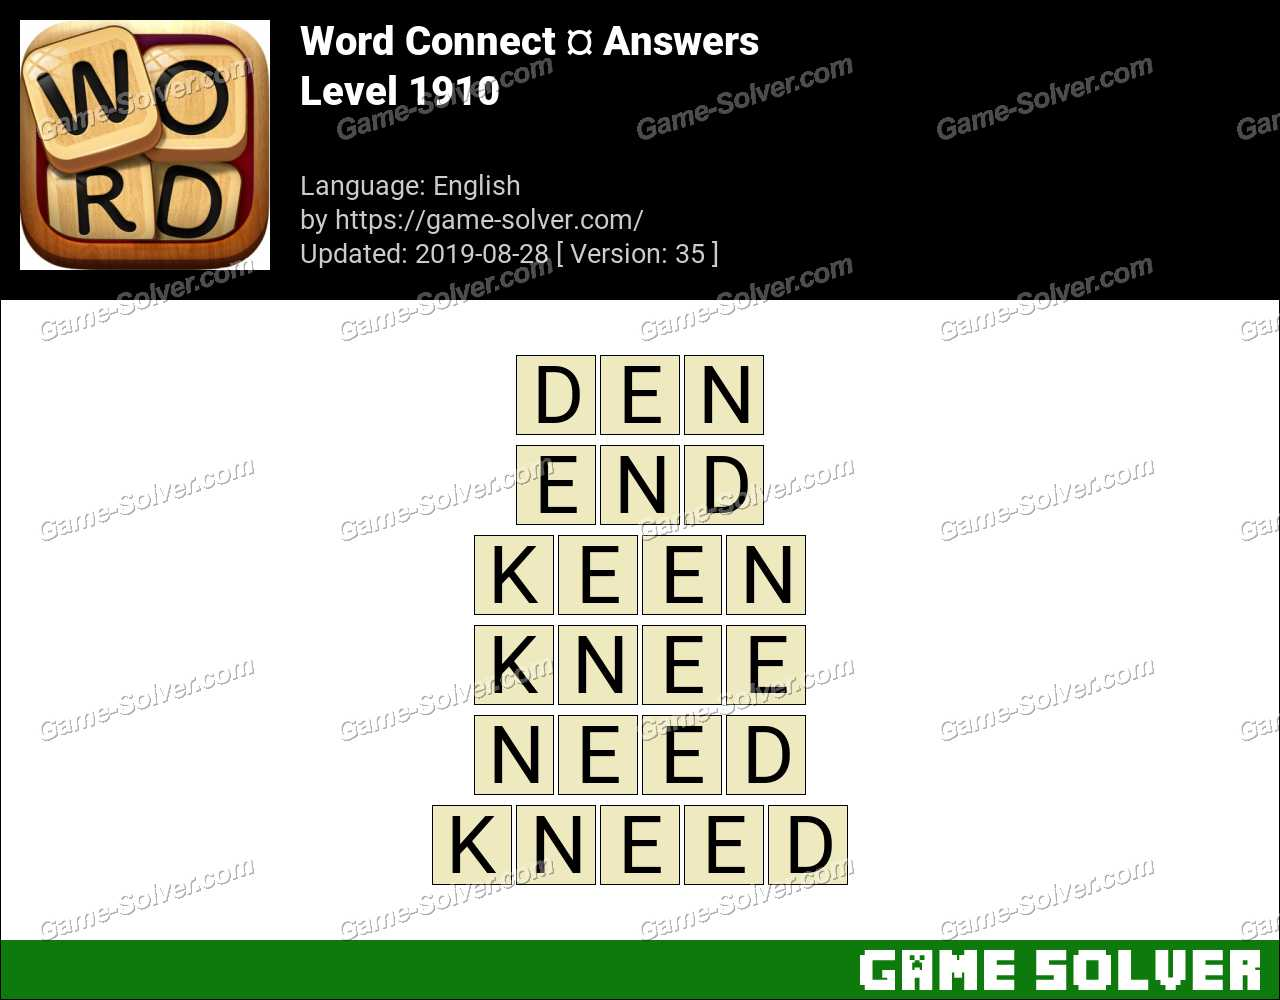 Word Connect Level 1910 Answers